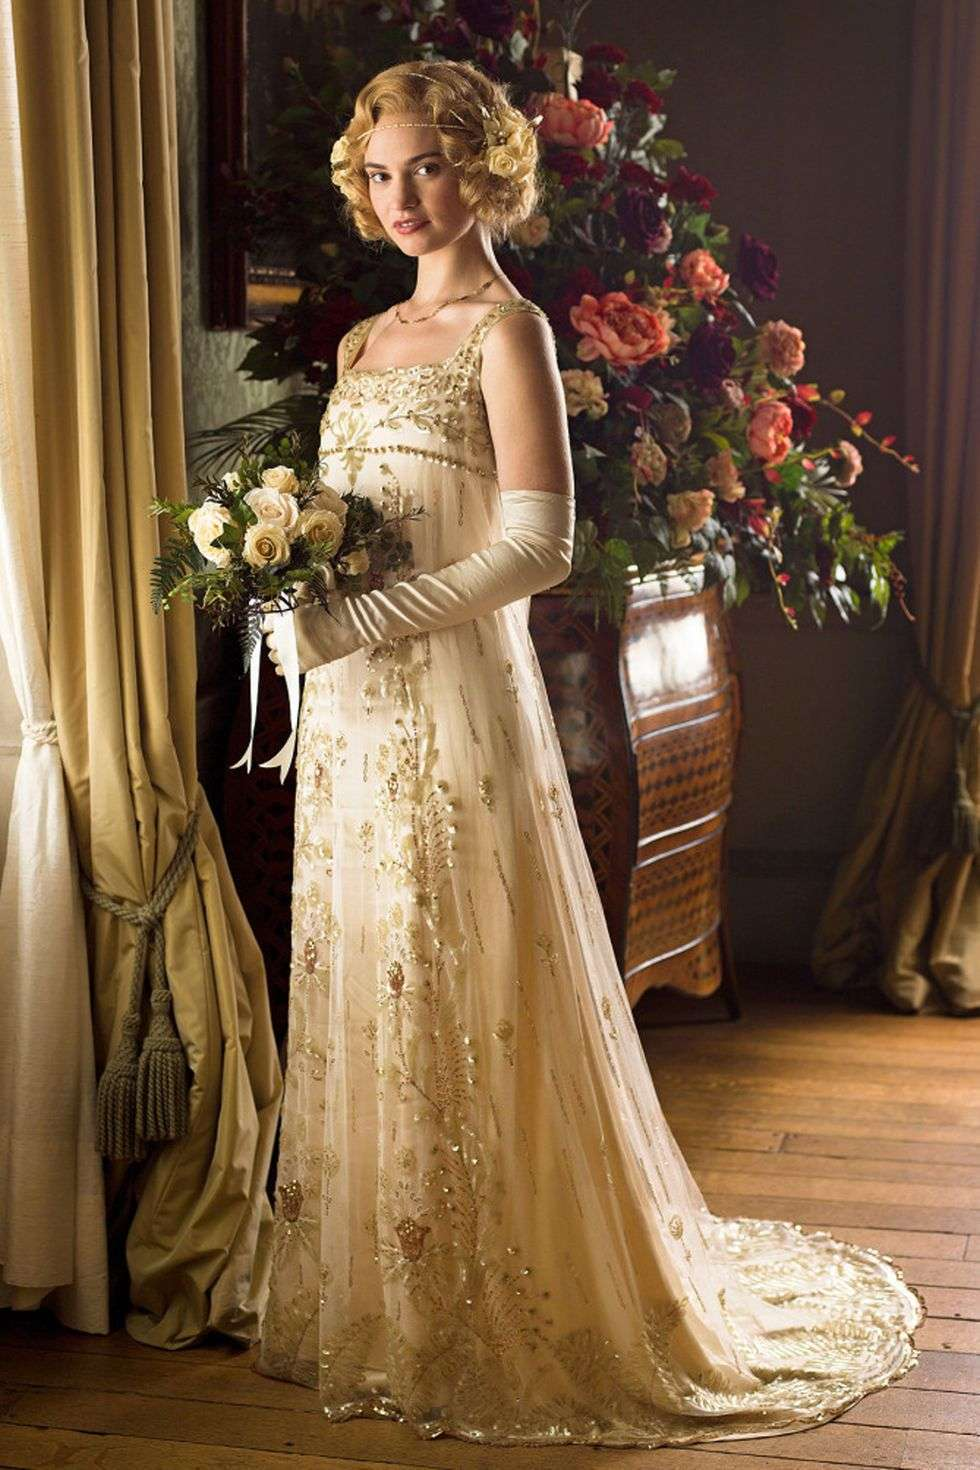 L'abito da sposa di Rose MacClare in Downton Abbey